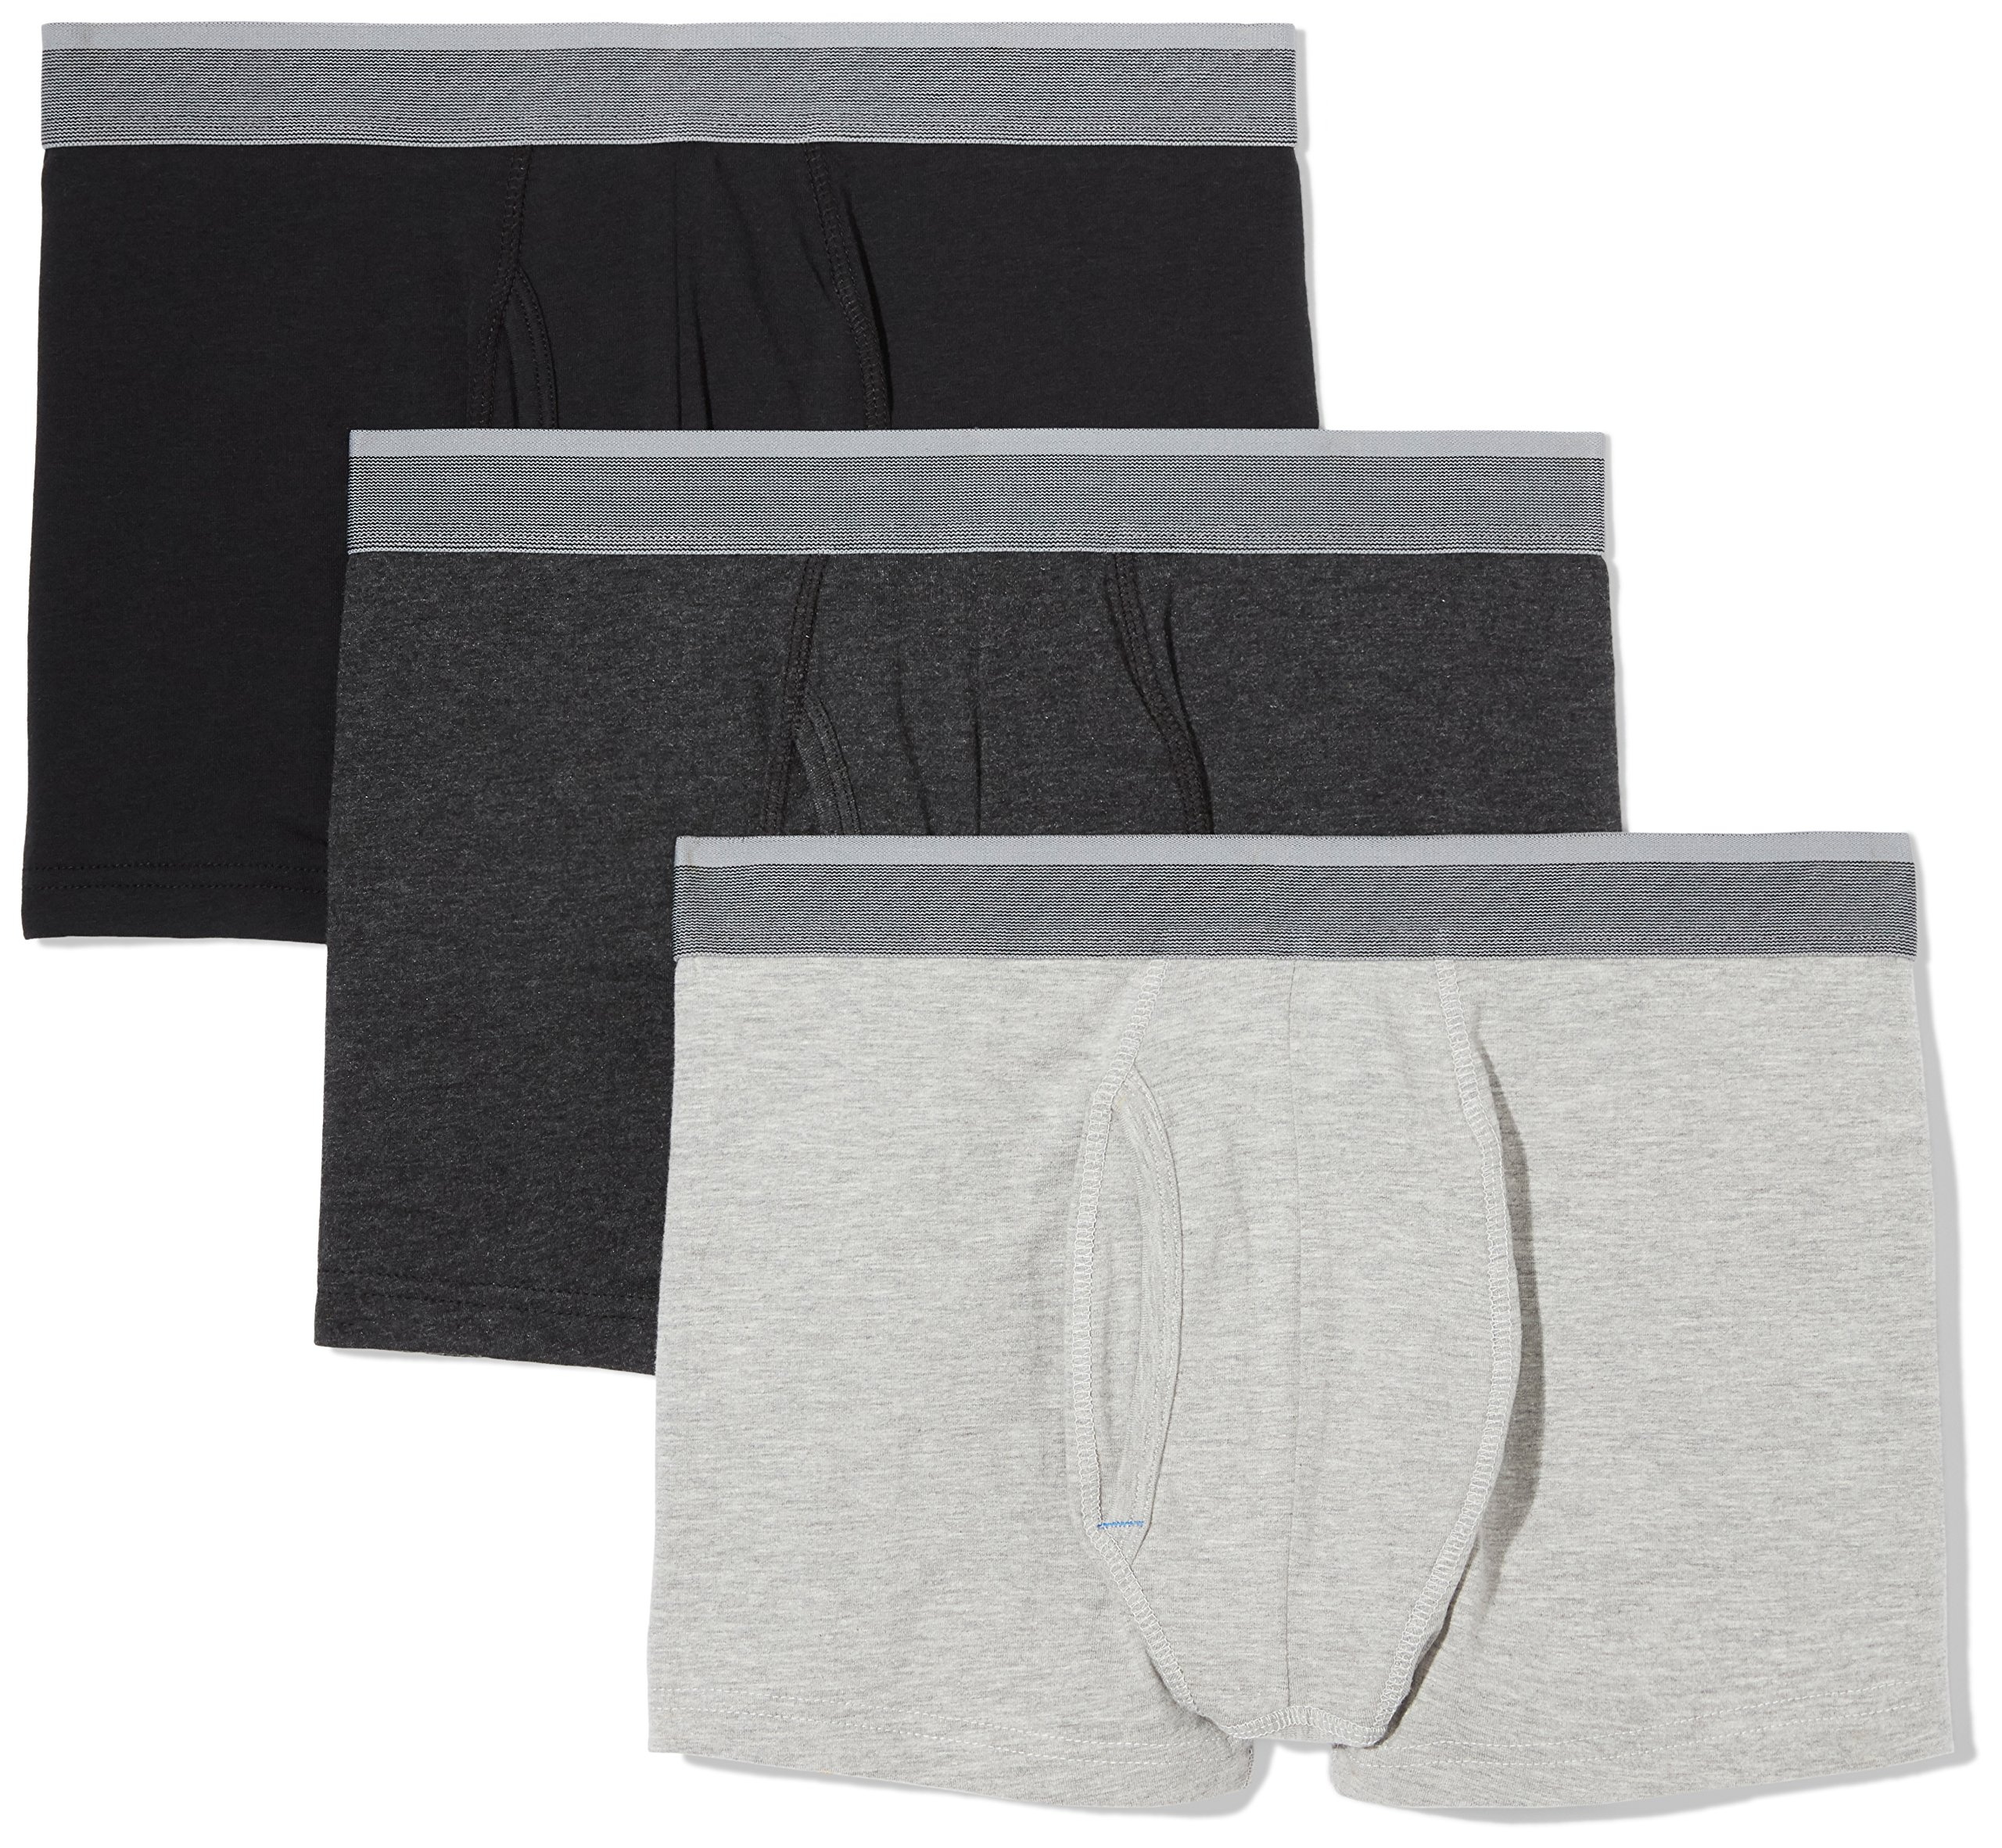 Amazon Essentials Men's 3-Pack Performance Cotton Stretch Trunk, Black/Dark Grey Heather/Light Grey Heather, Medium